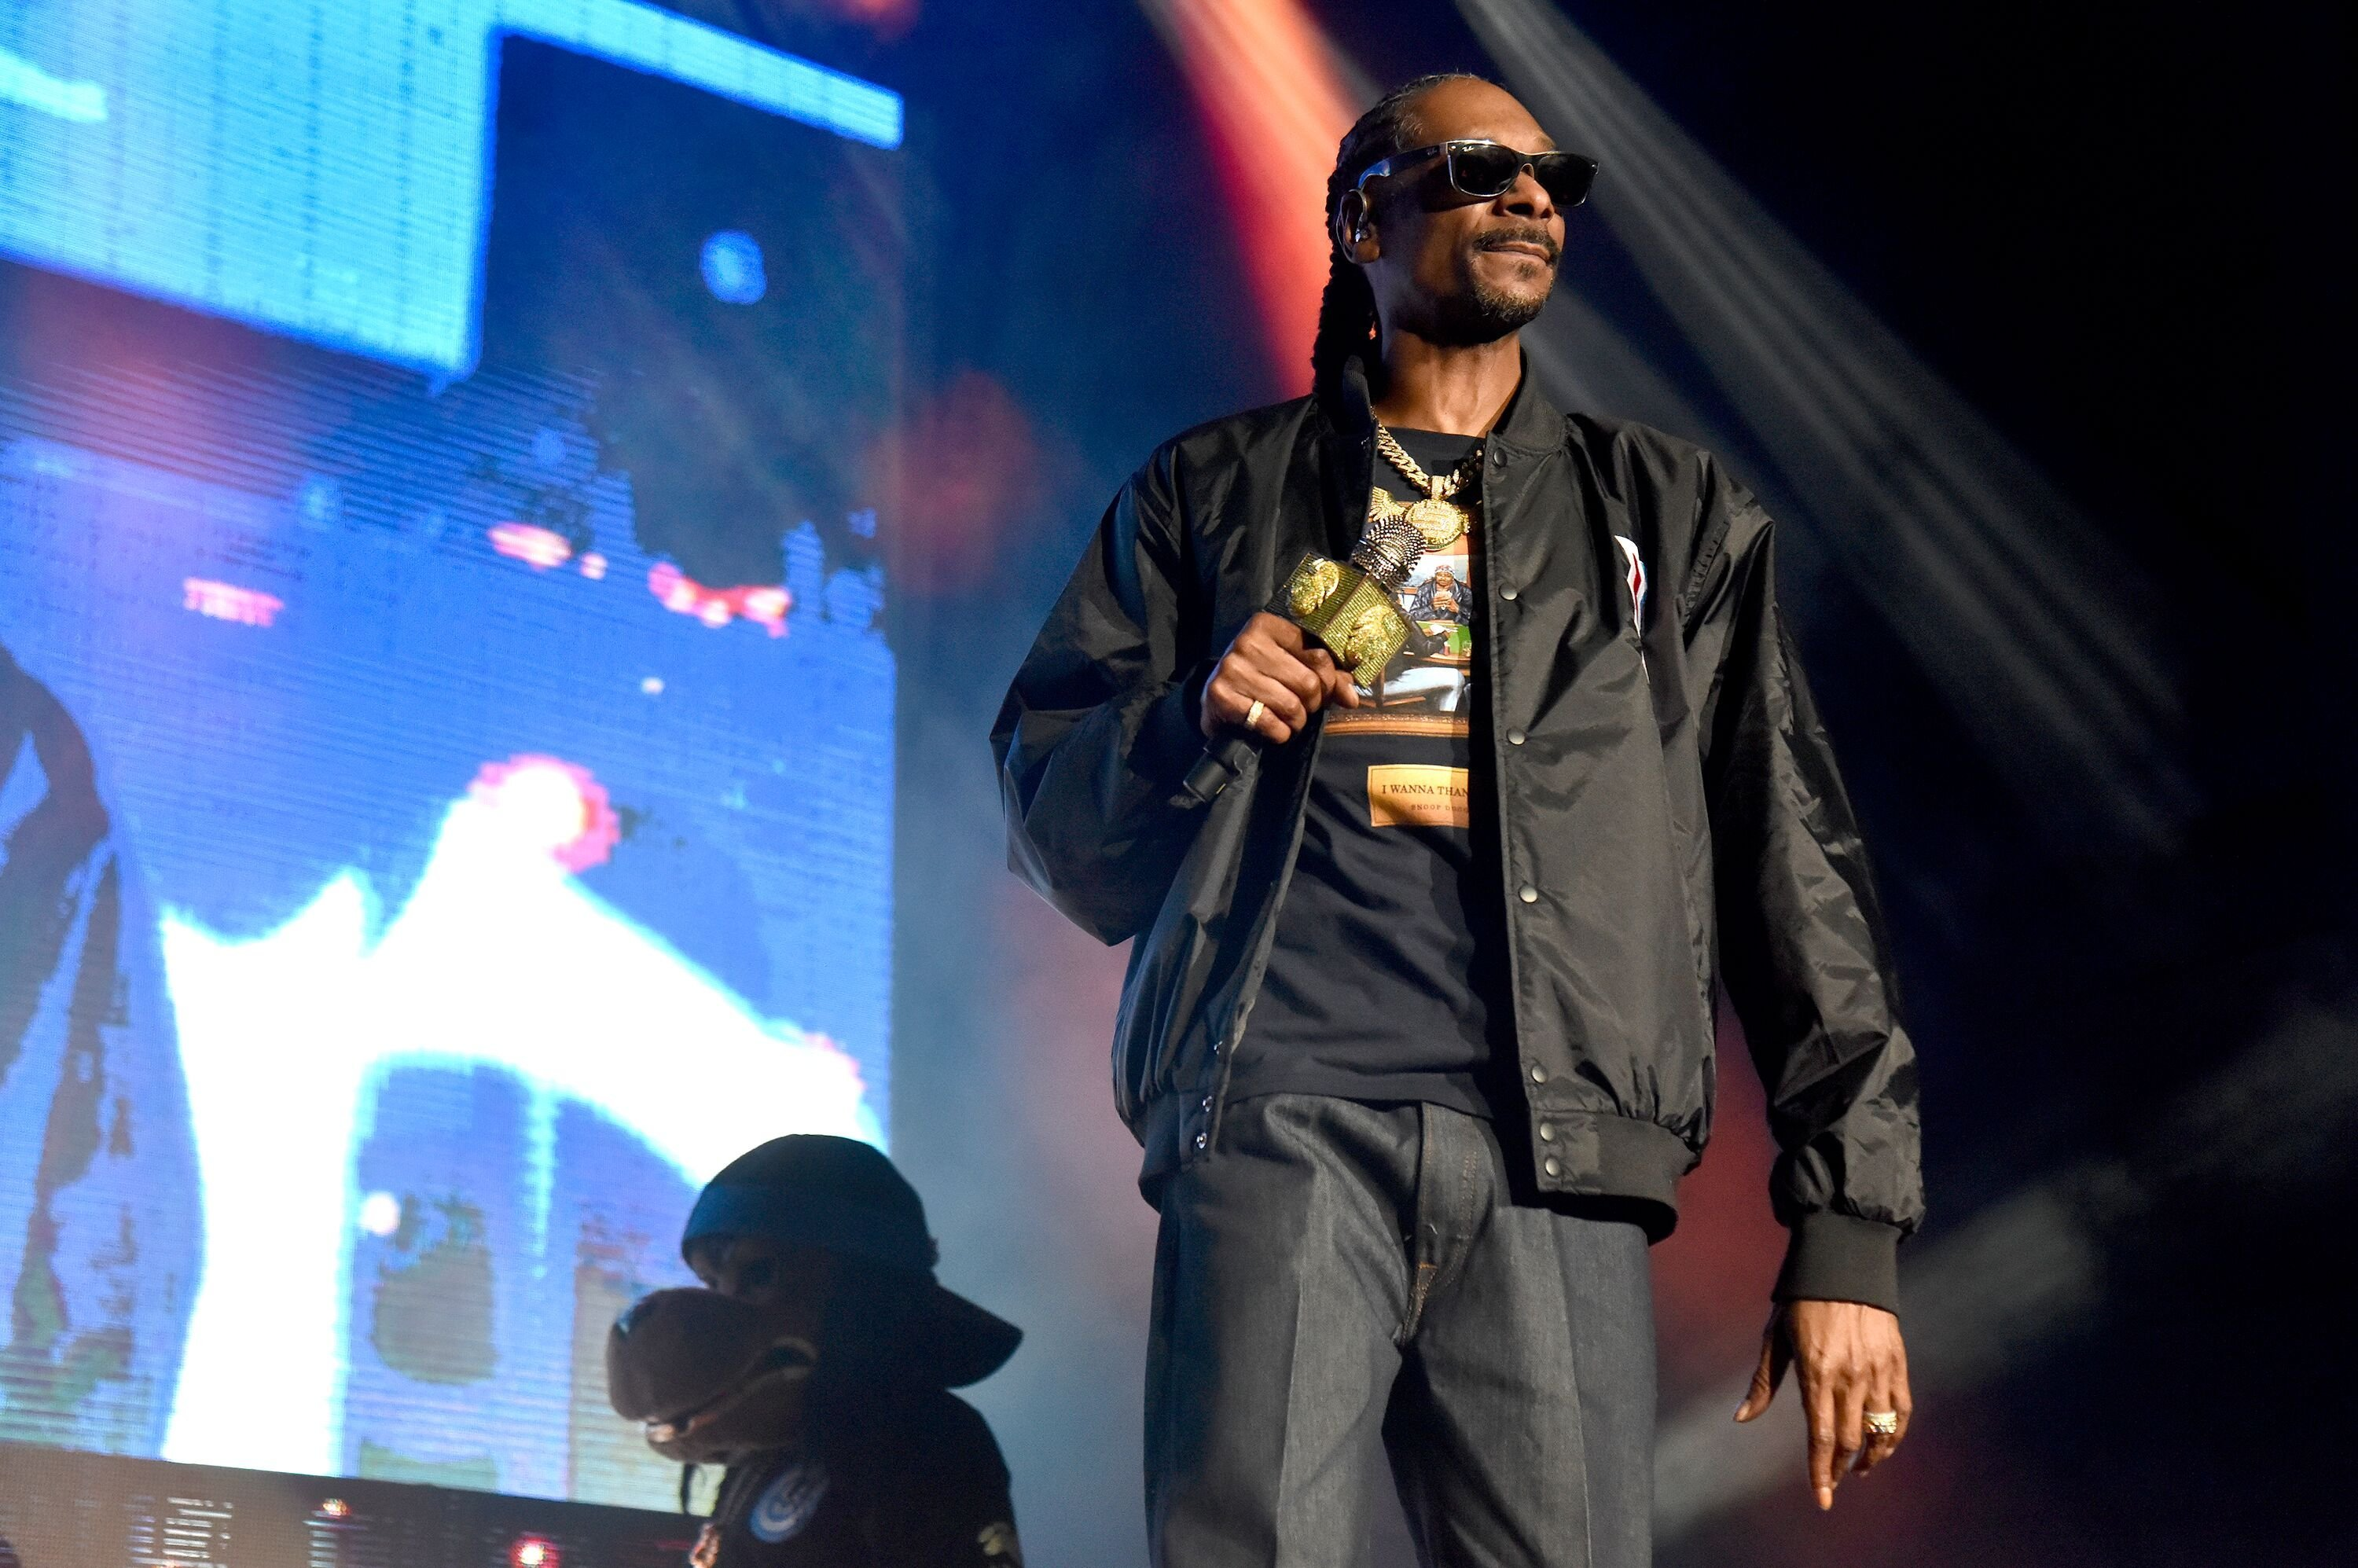 Snoop Dogg performing onstage | Source: Getty Images/GlobalImagesUkraine